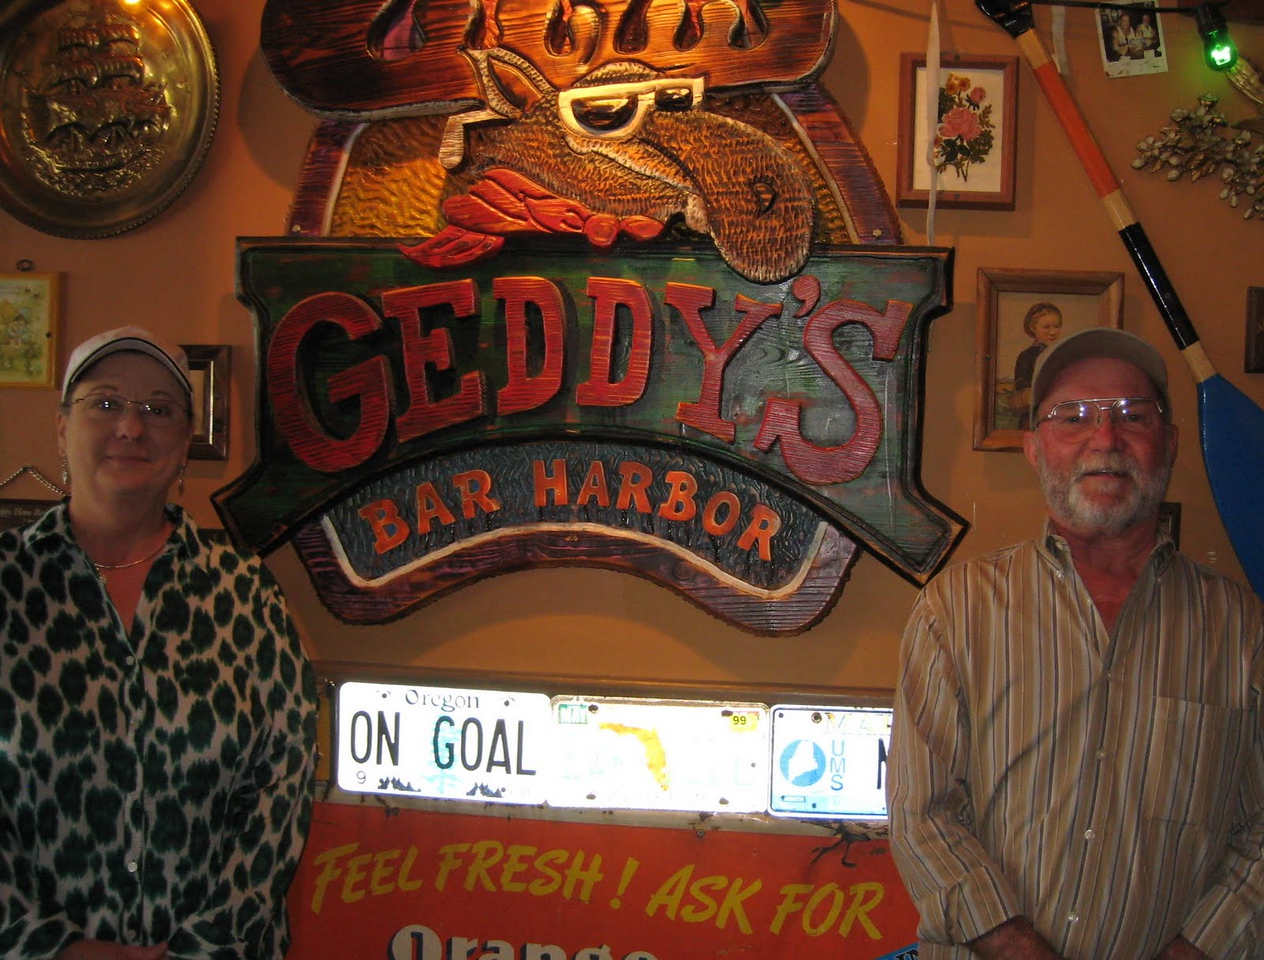 Geddy's - Bar Harbor, Maine